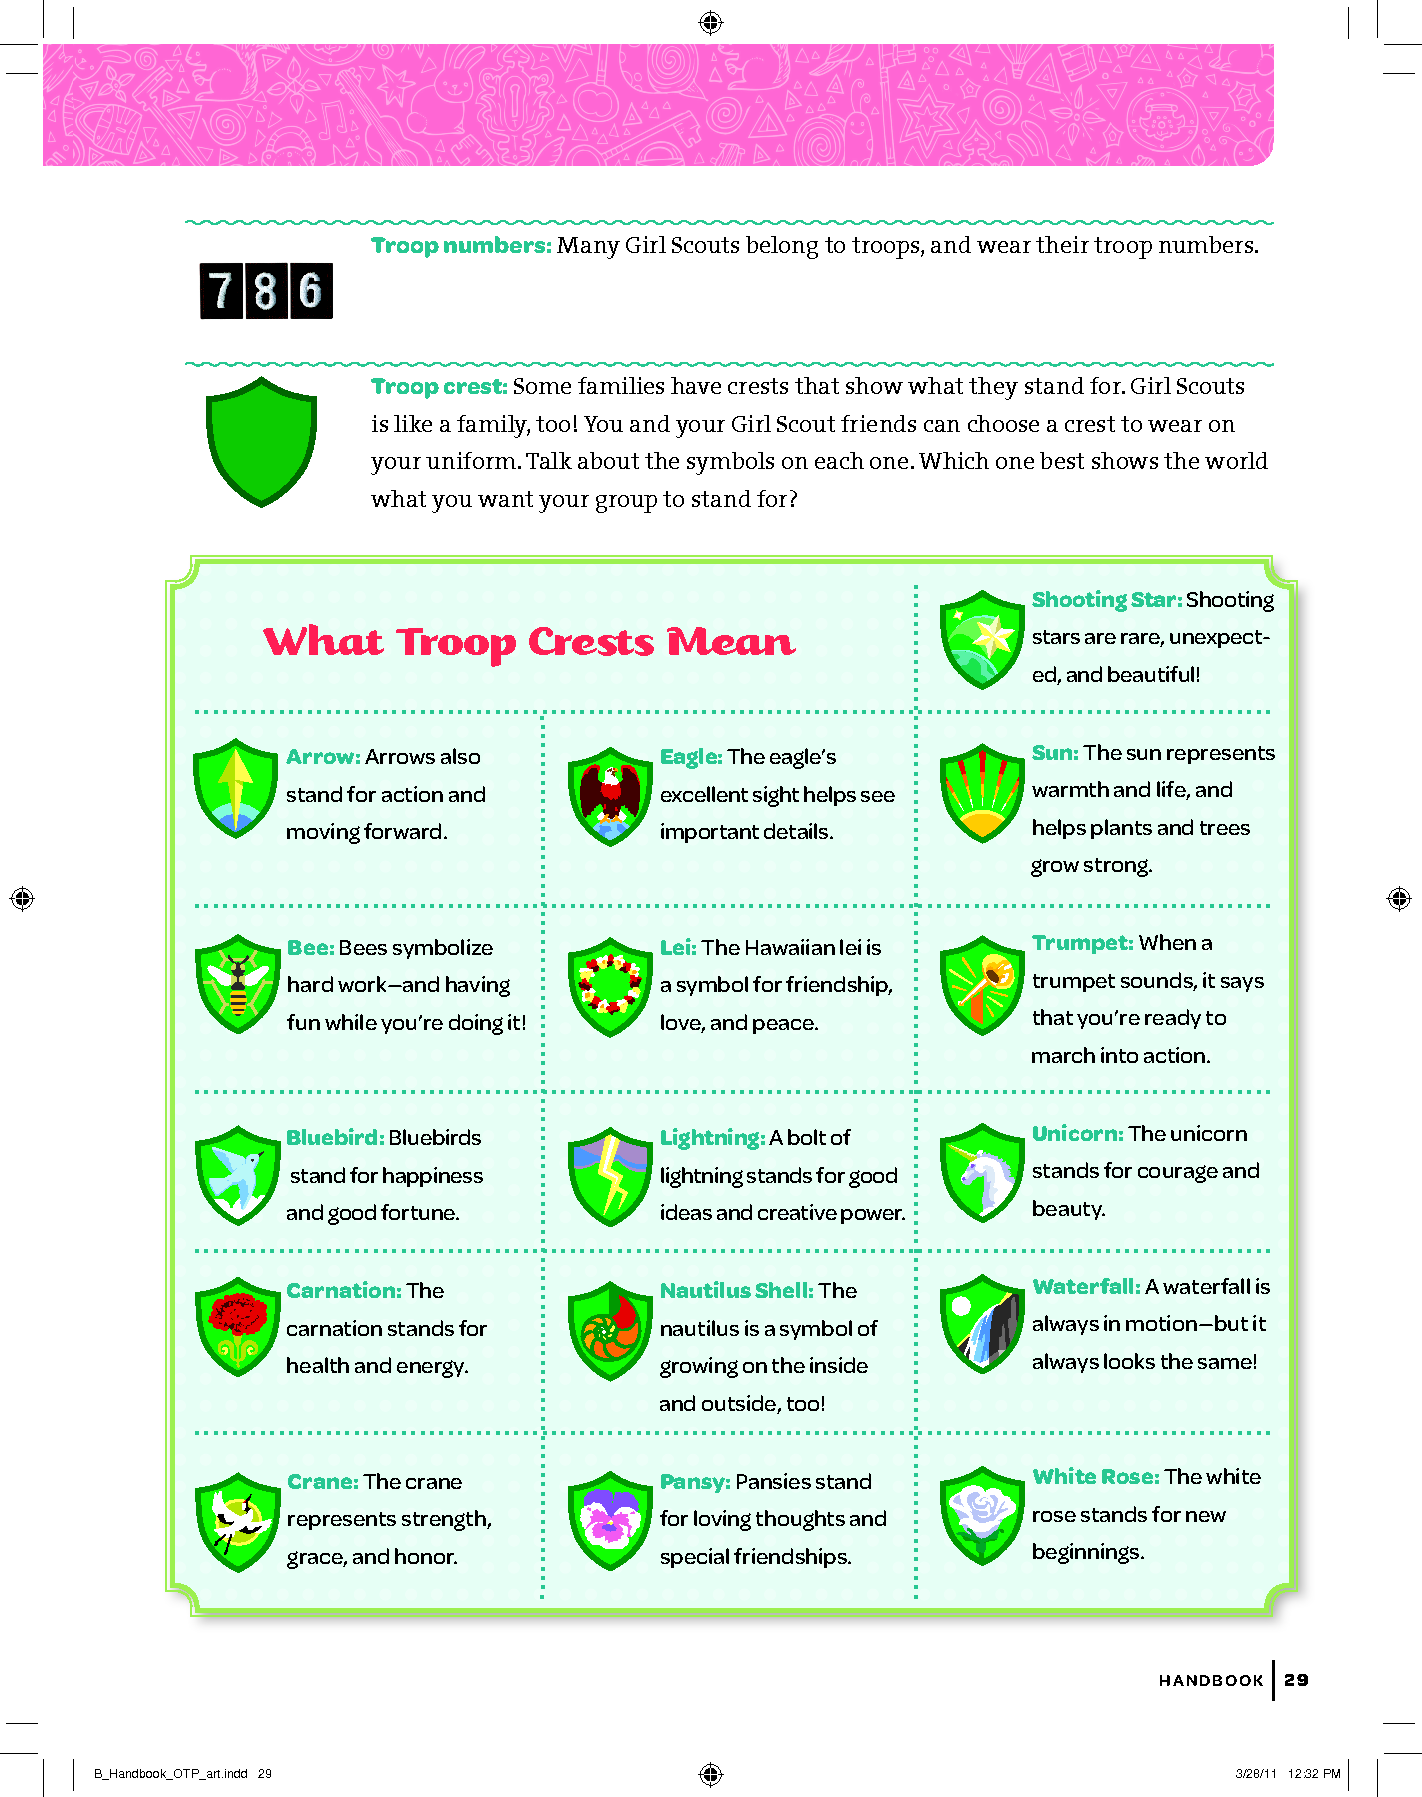 girl scout crest meanings | Girl Scout Ideas | Pinterest | Scouts ...